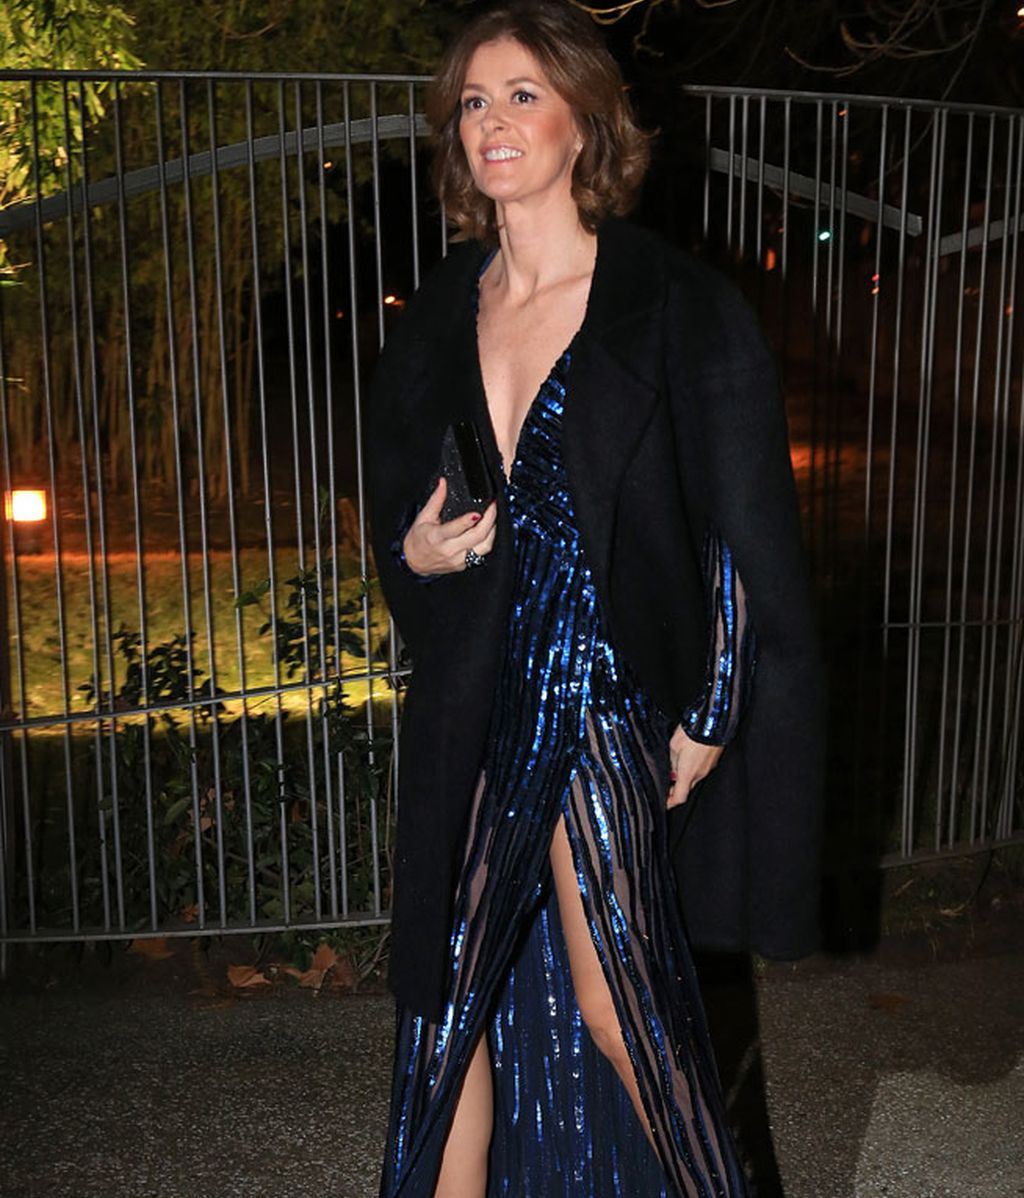 Nuria March con vestido azul brillo